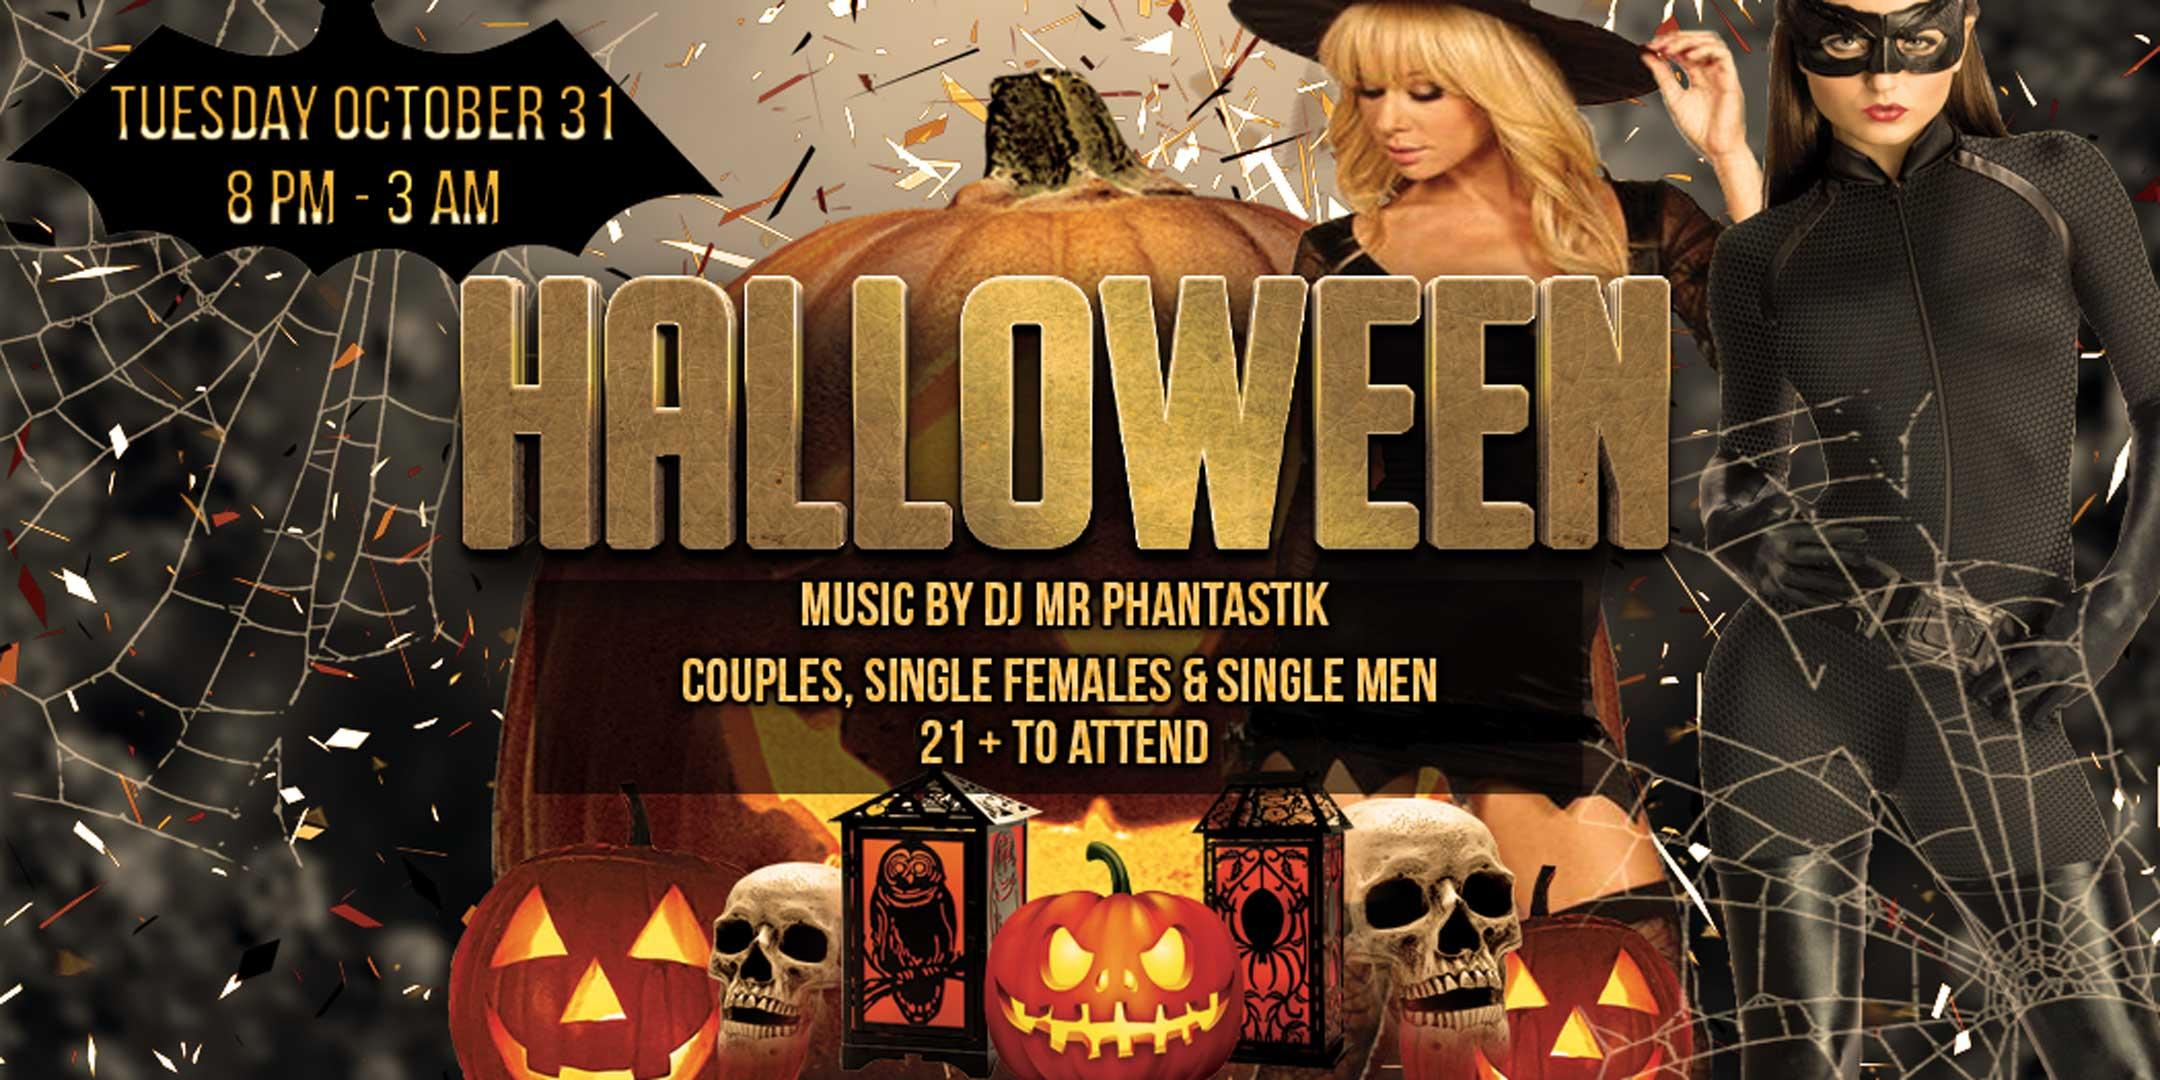 Bowery Bliss' Annual Halloween Party @ New York - 31 OCT 2017